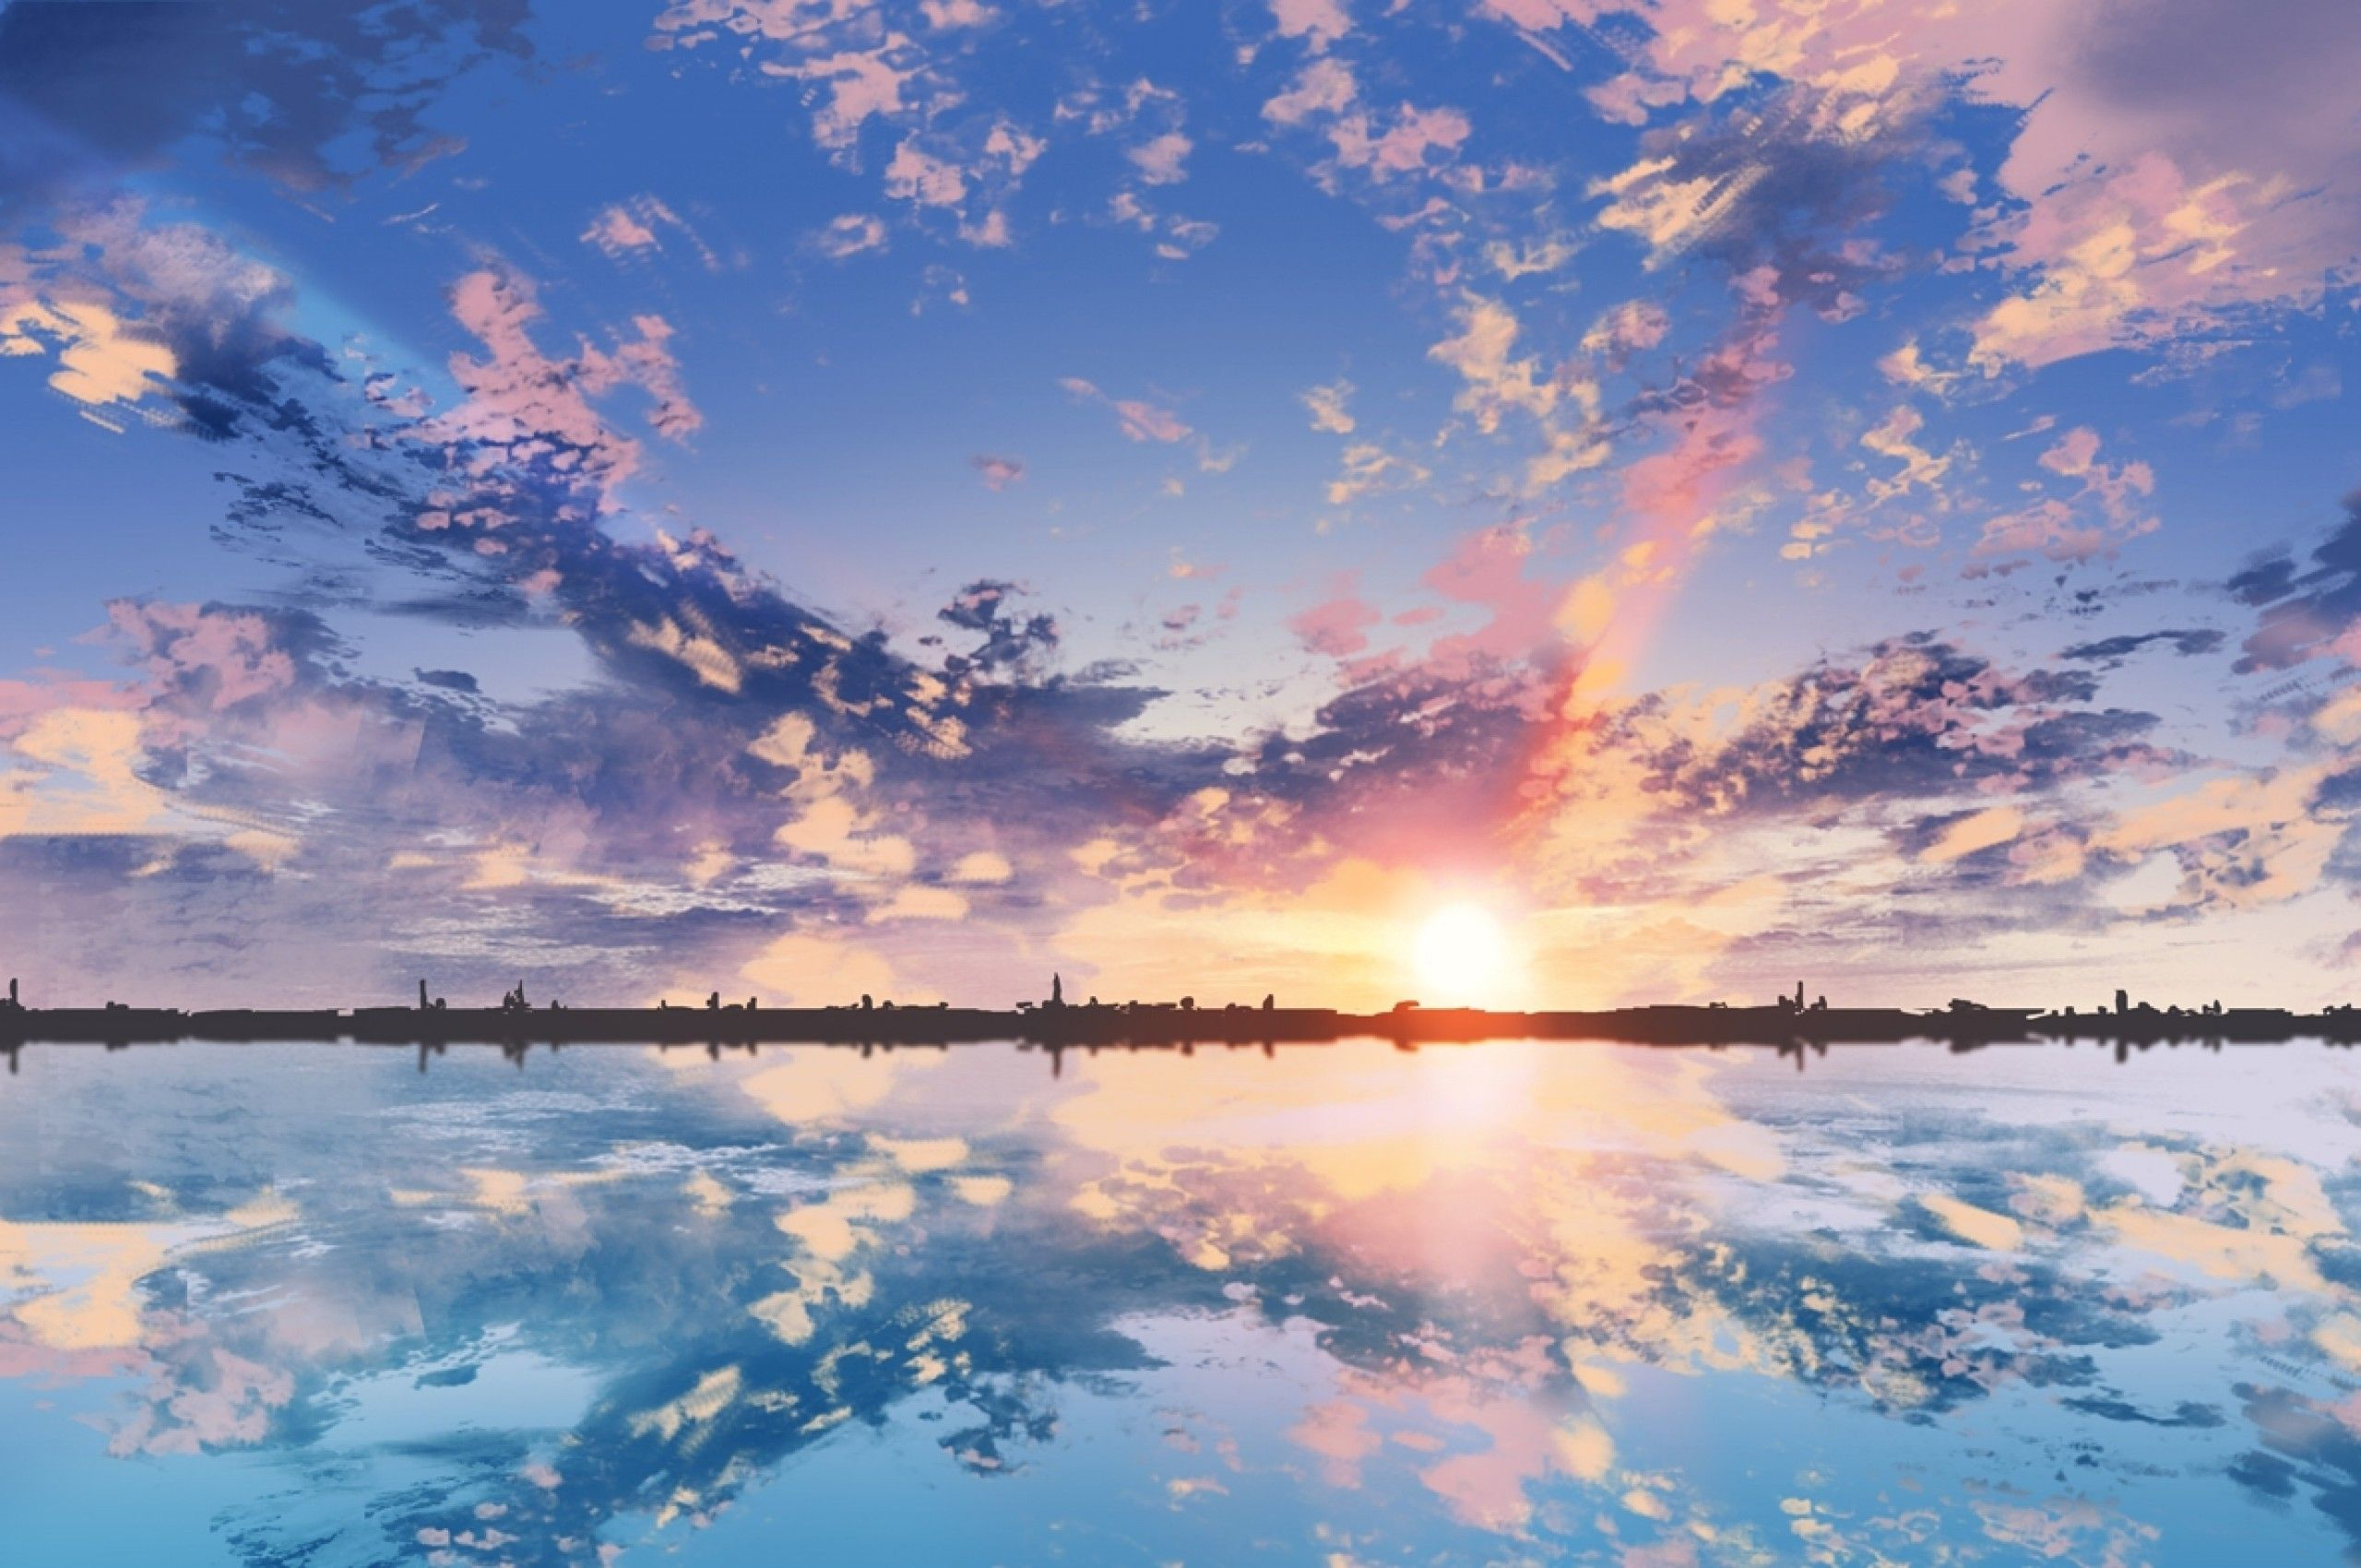 Anime Wallpaper For Dual Monitor Download 2560x1700 Anime Scenic Clouds Sunset Reflection Dual Monitor Wallpa Anime Wallpaper Scenery Wallpaper Anime Scenery